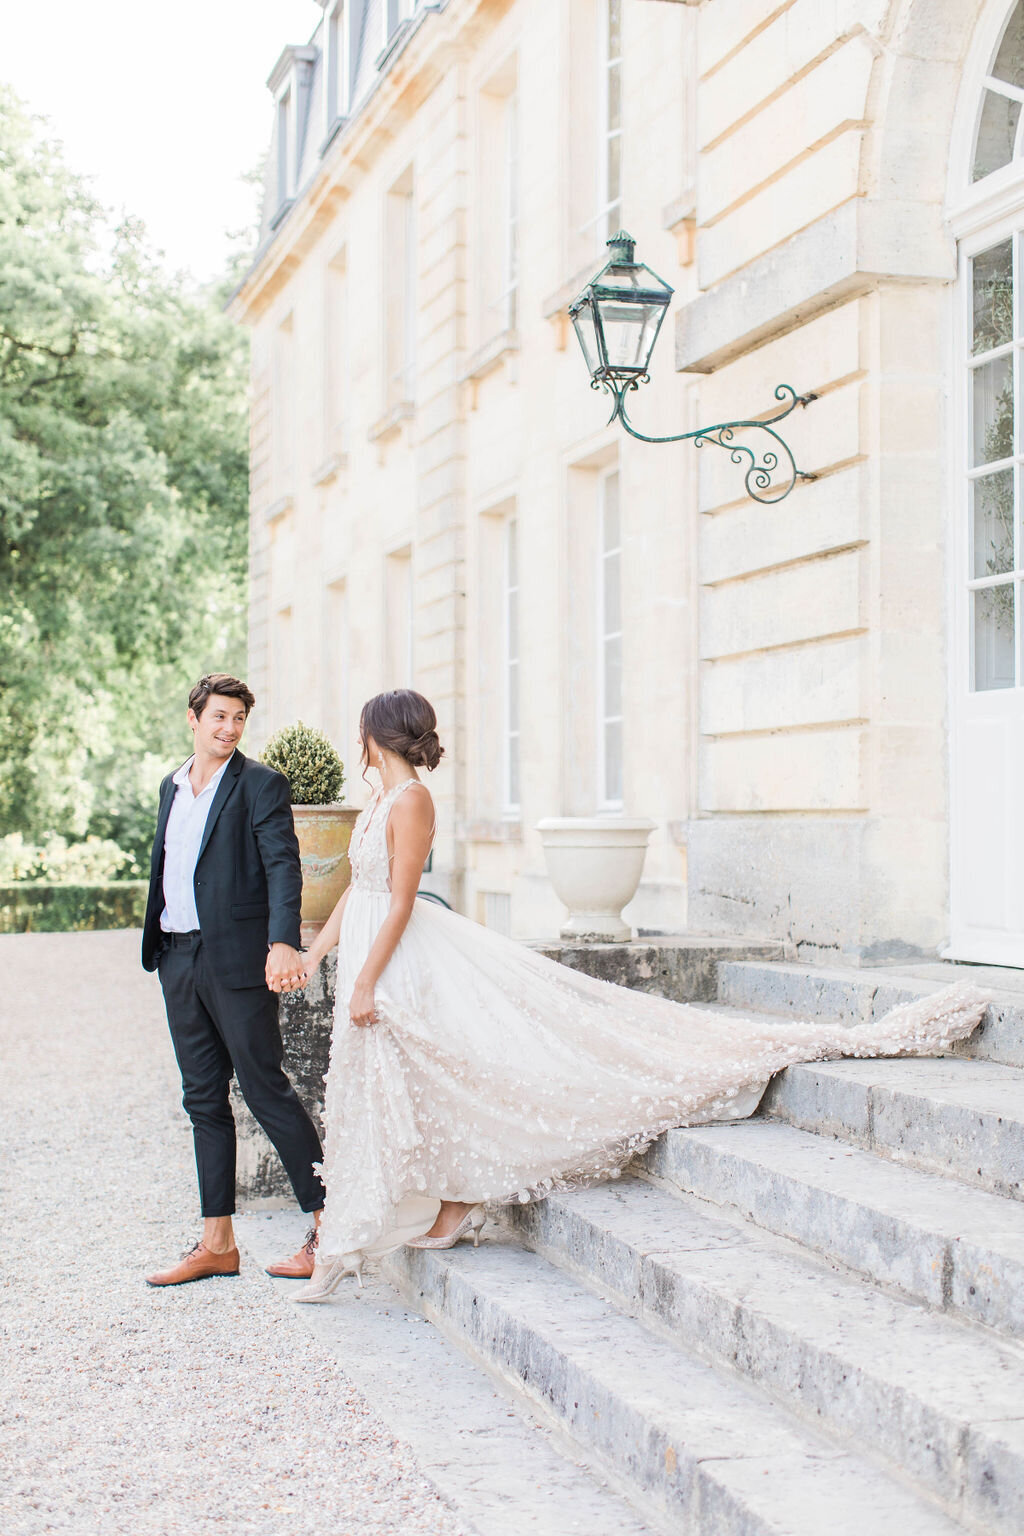 Bride and Groom posed by Paige Michelle Photography during destination wedding in Europe